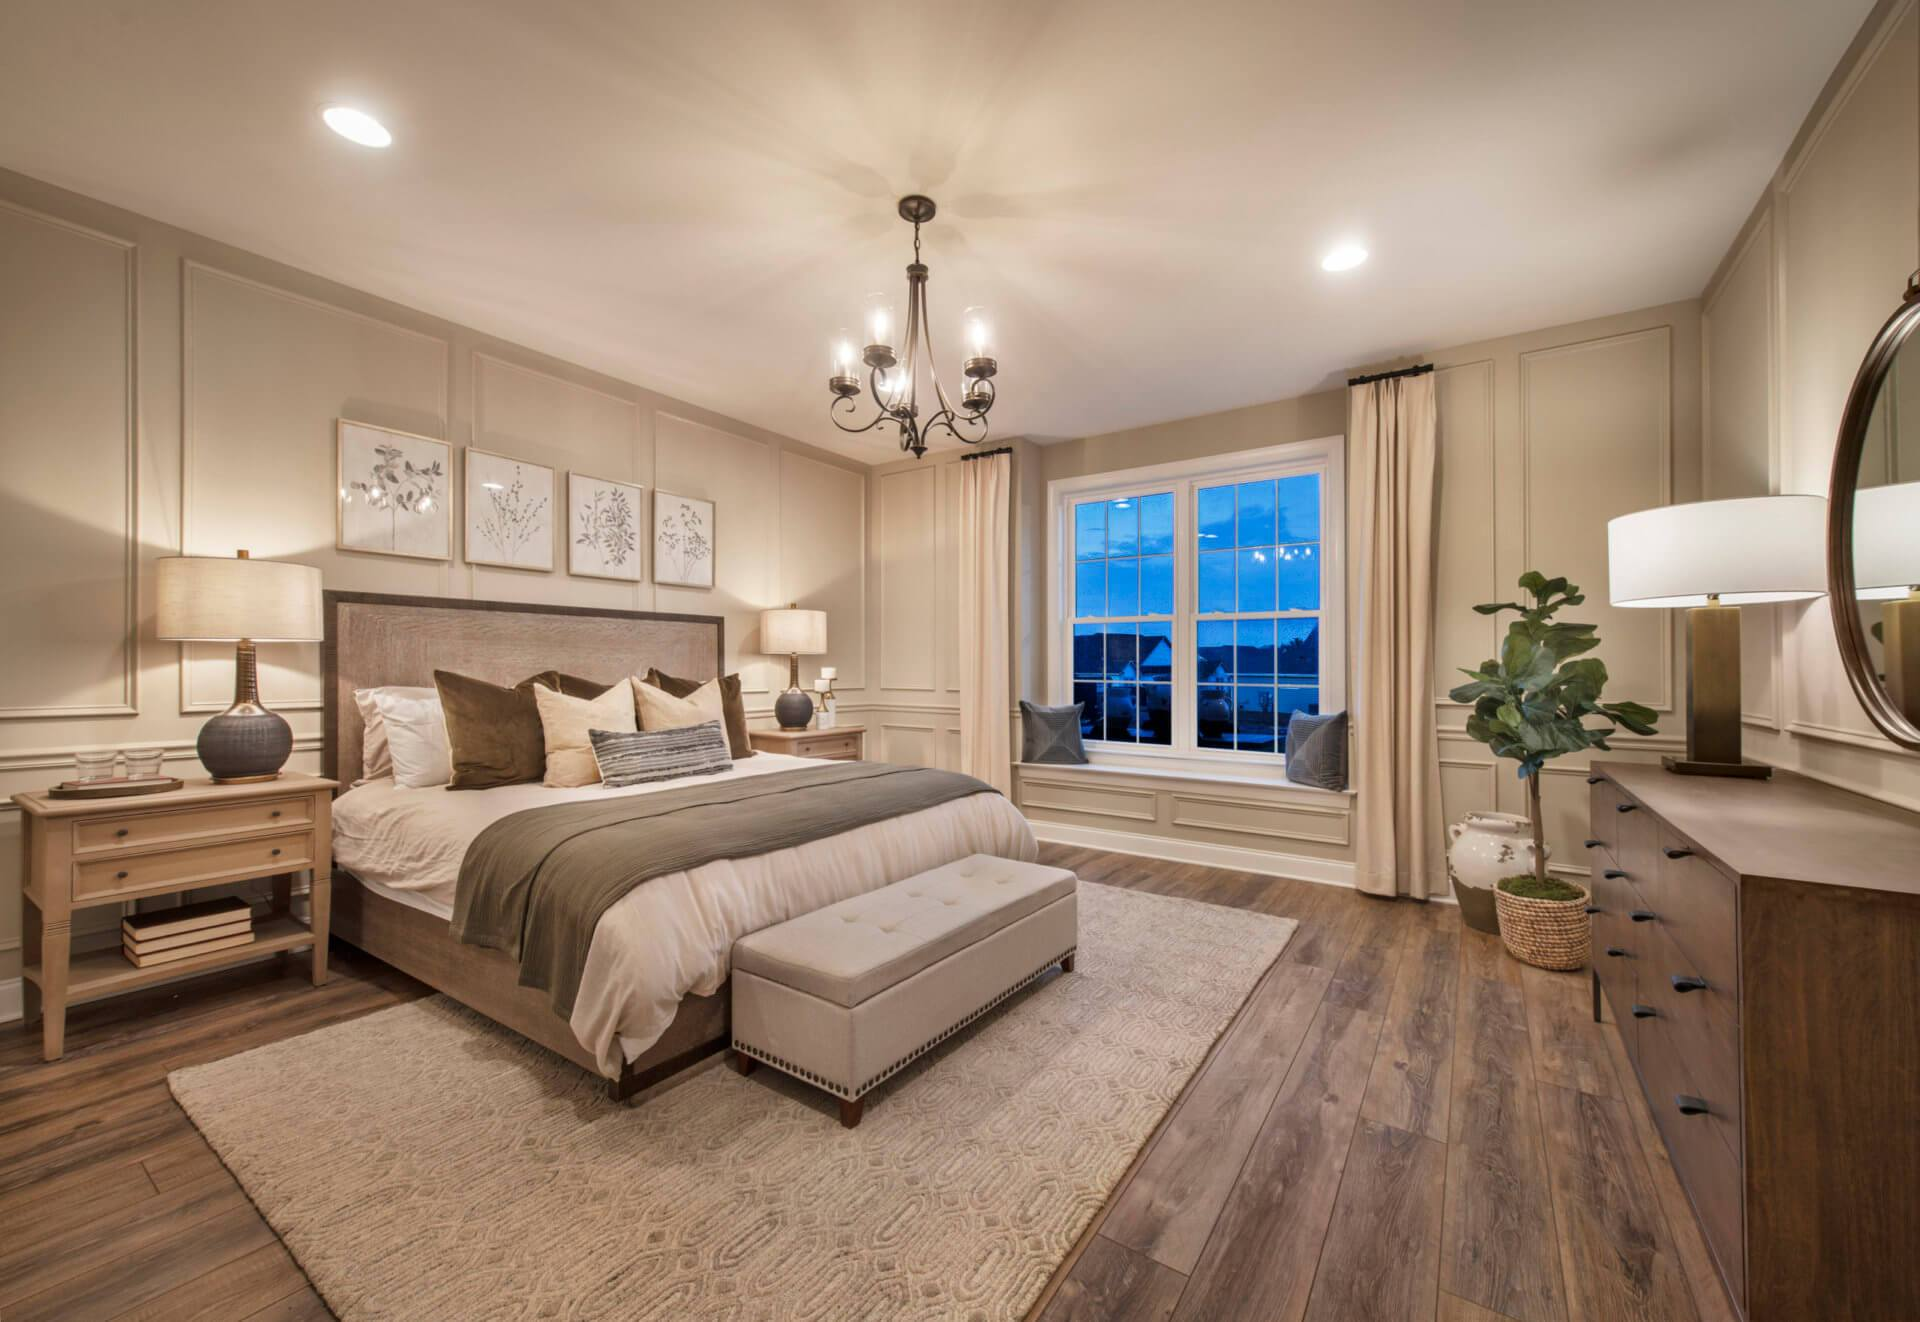 Bedroom featured in The Adams By Traditions of America in Pittsburgh, PA